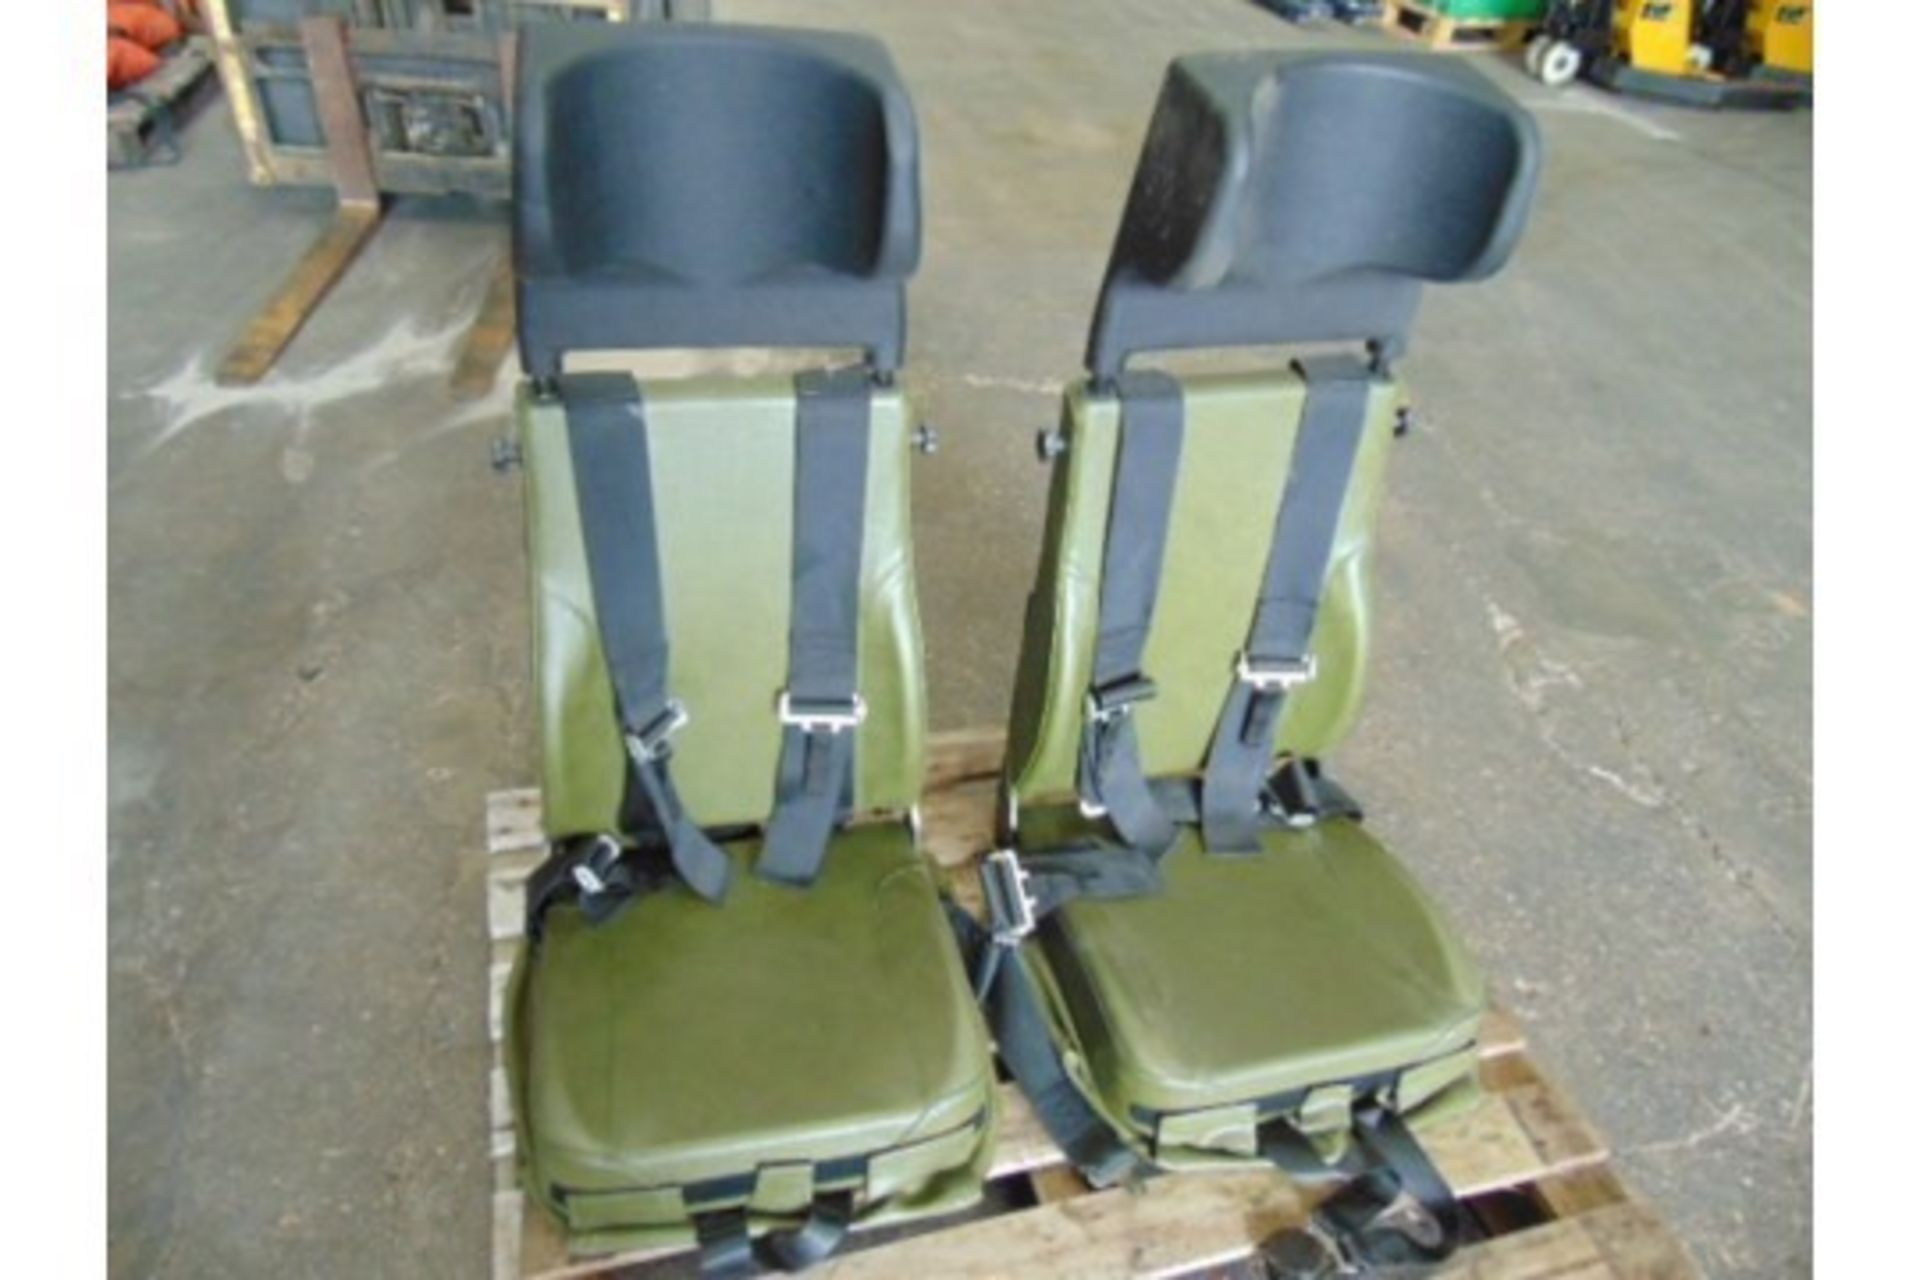 Lot 373 - Qty 2 x Unissued Vehicle Operators Seats with Harness